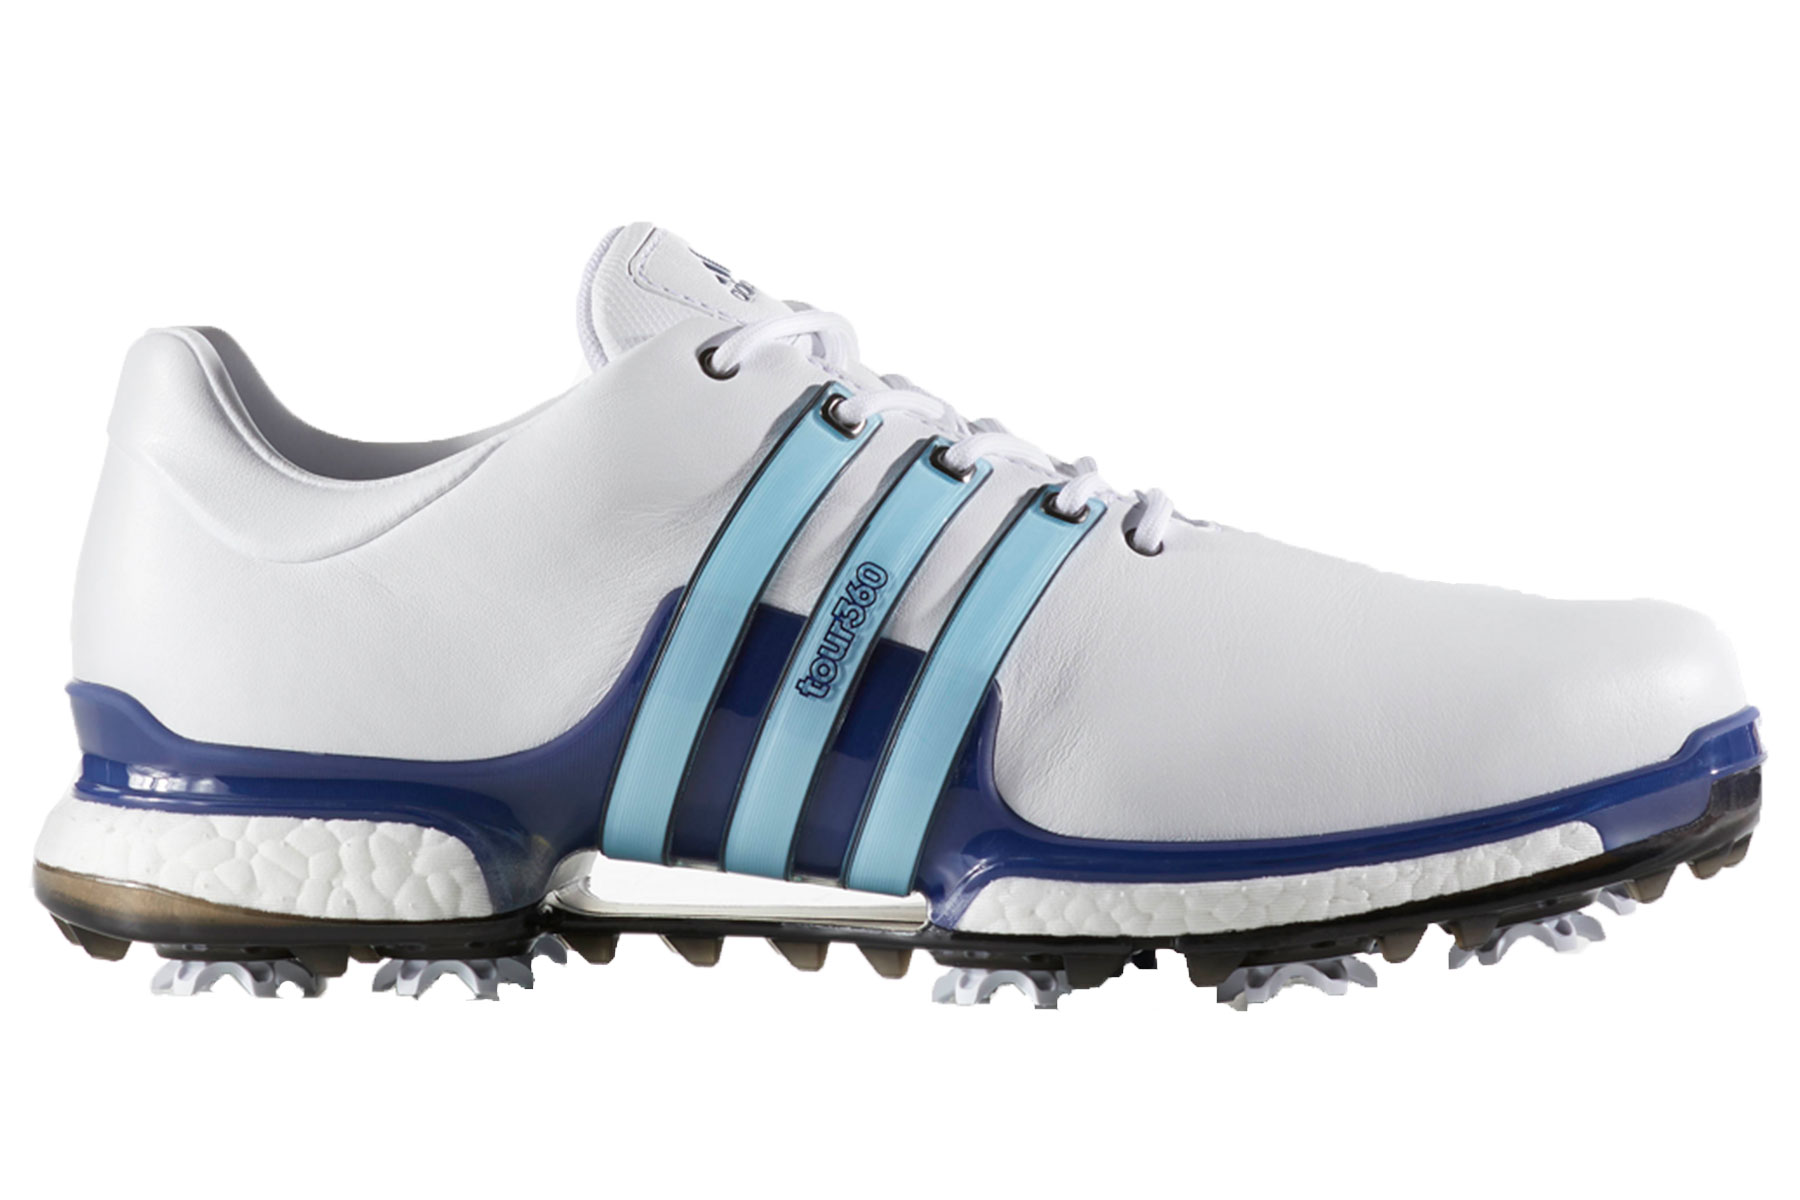 adidas Golf Tour 360 Boost 2.0 Shoes